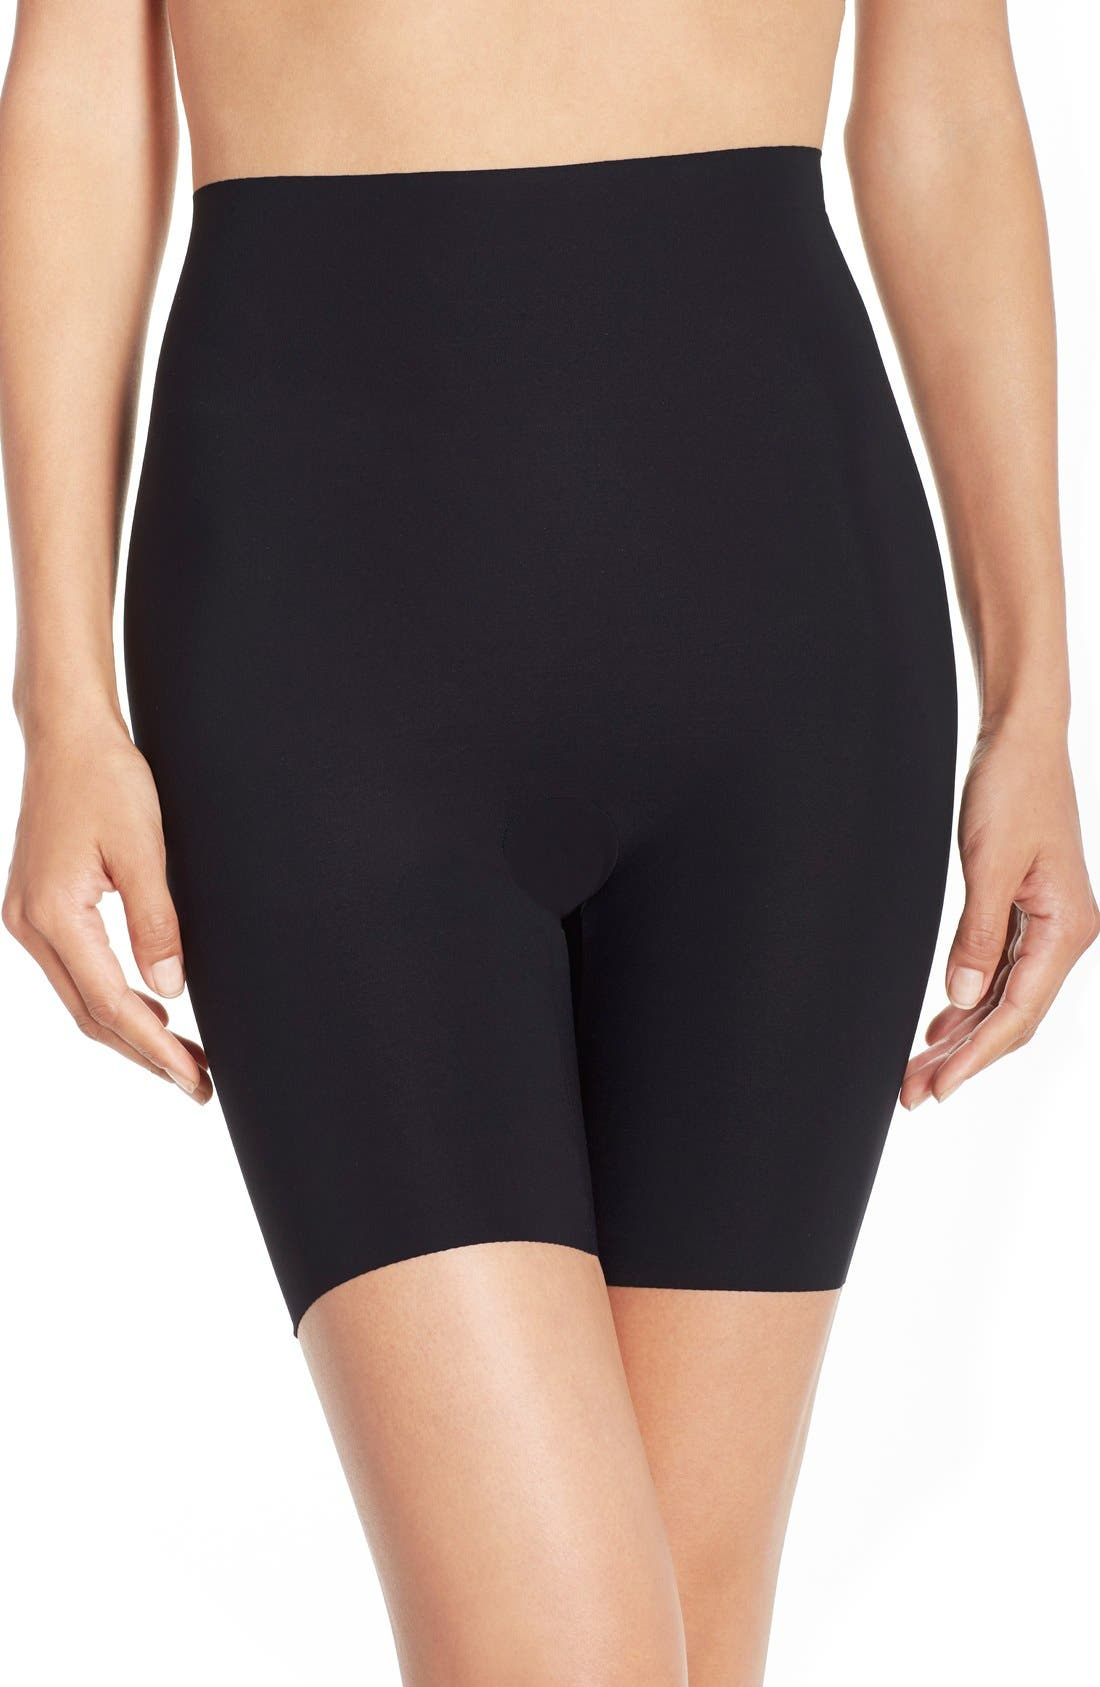 'Control' High Waist Shaping Shorts,                             Main thumbnail 1, color,                             BLACK